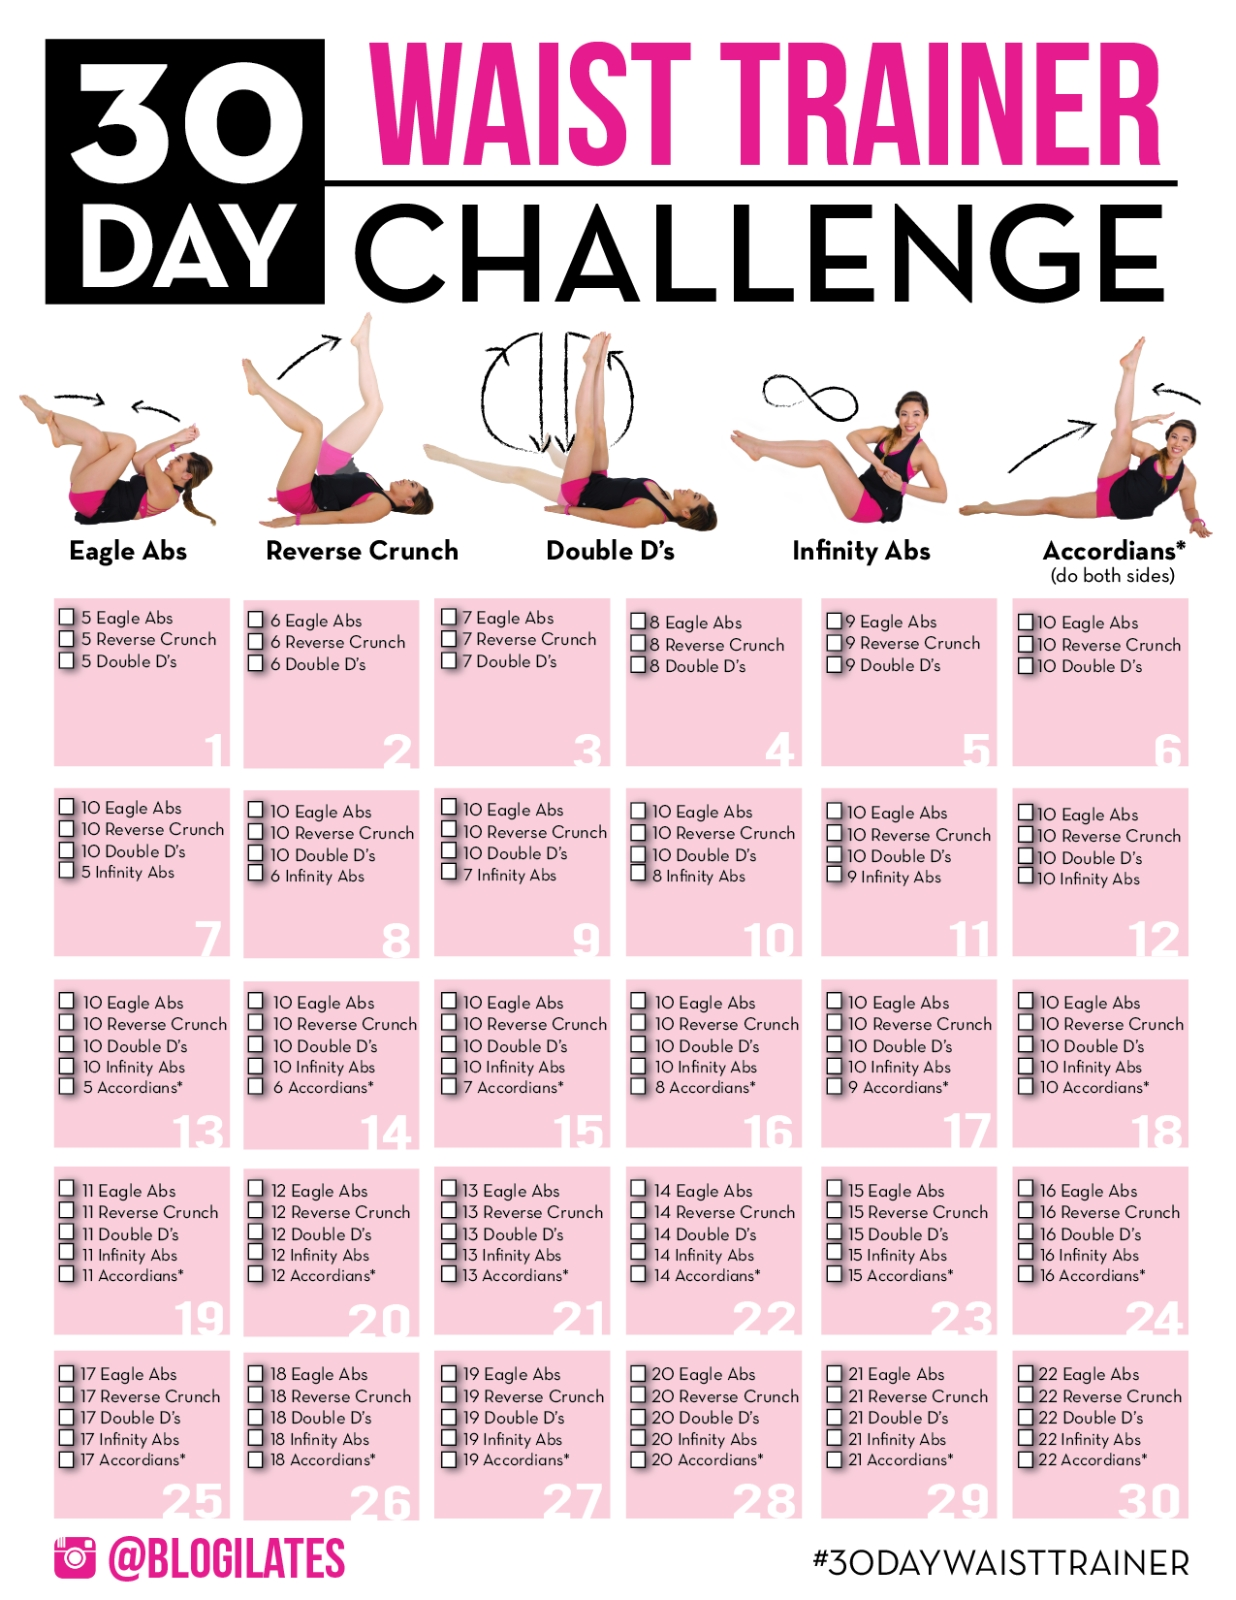 30 Day Challenge Archives – Blogilates with regard to Hip Hop Abs Month 2 Calendar